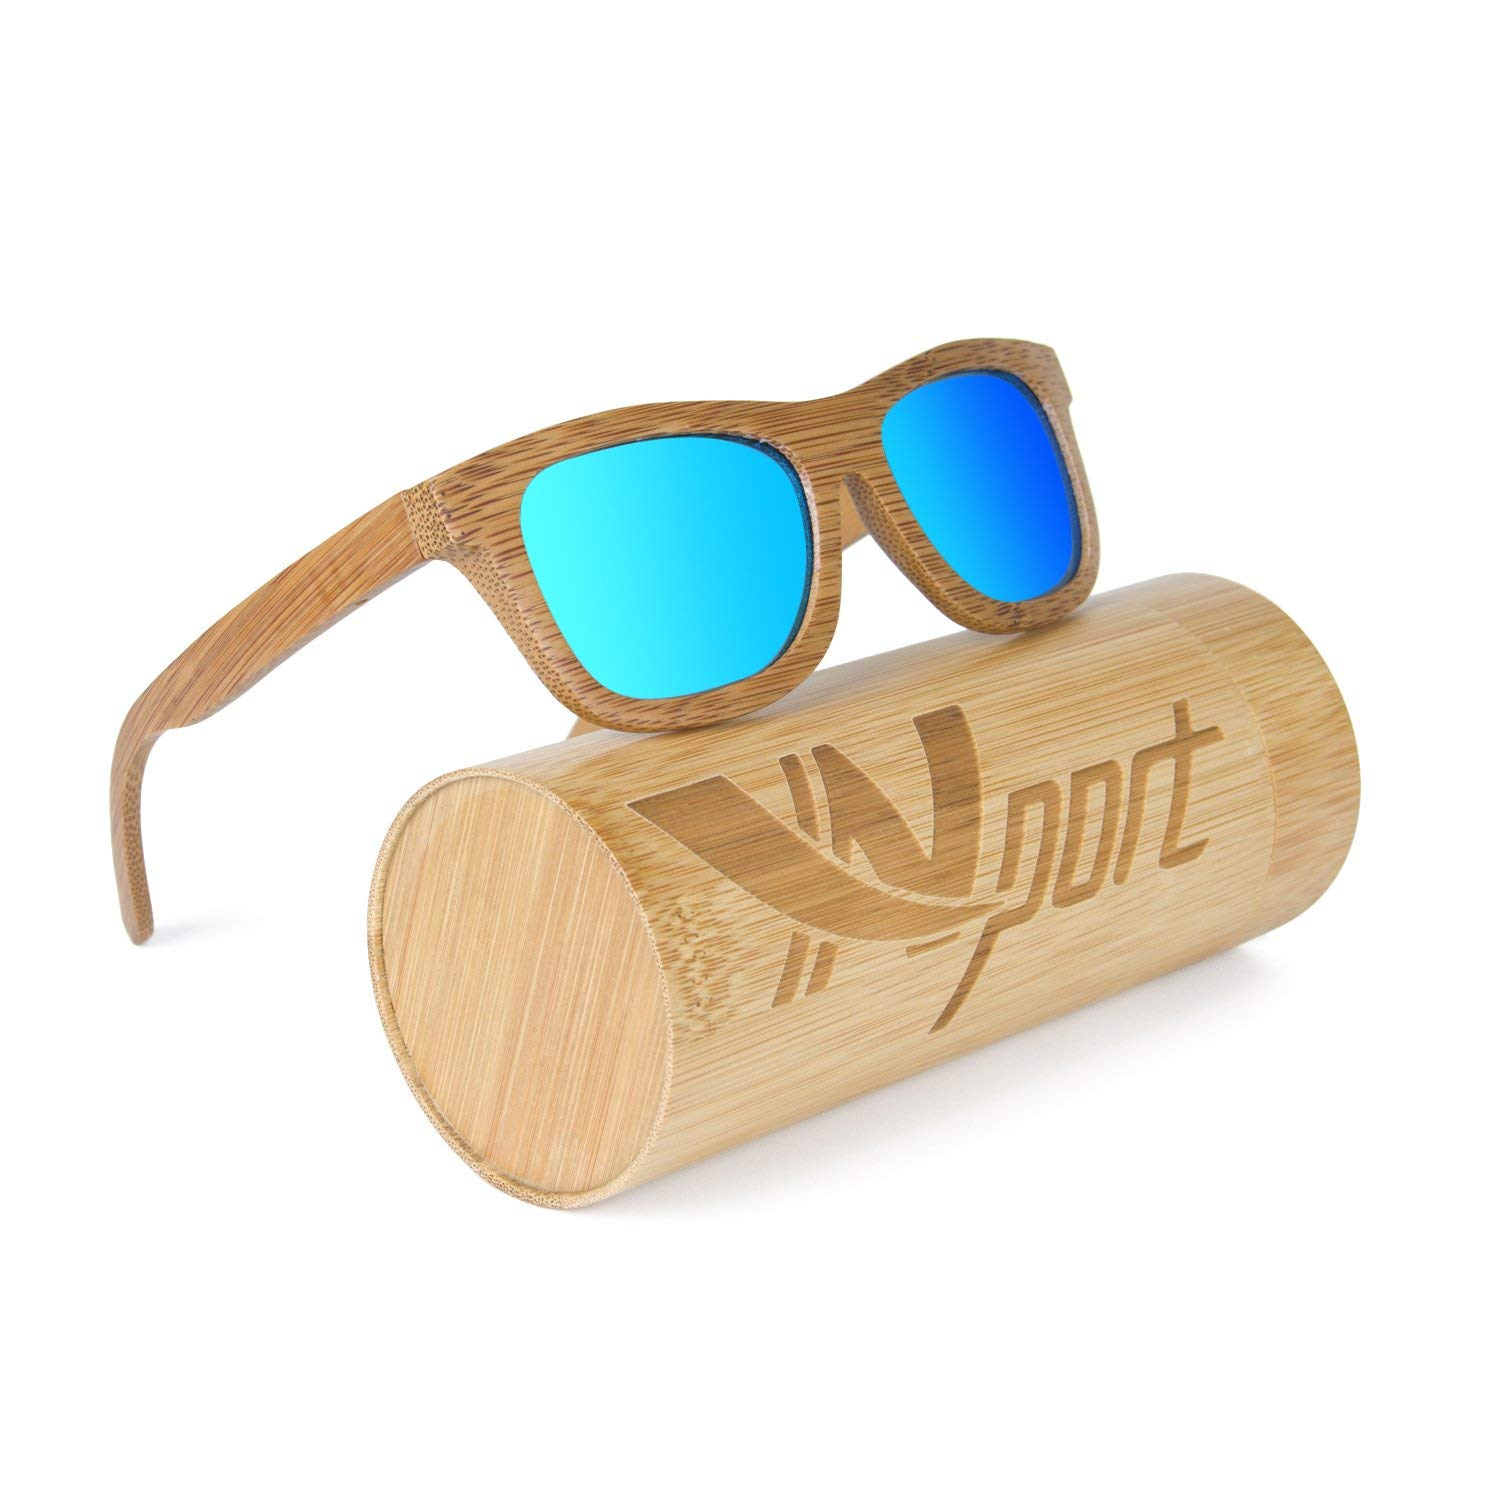 Ynport Mens/Womens Polarized Full Charcoal Bamboo Frame Classic Wooden Coated Sunglasses, vintage Eyewear, Floating in Water